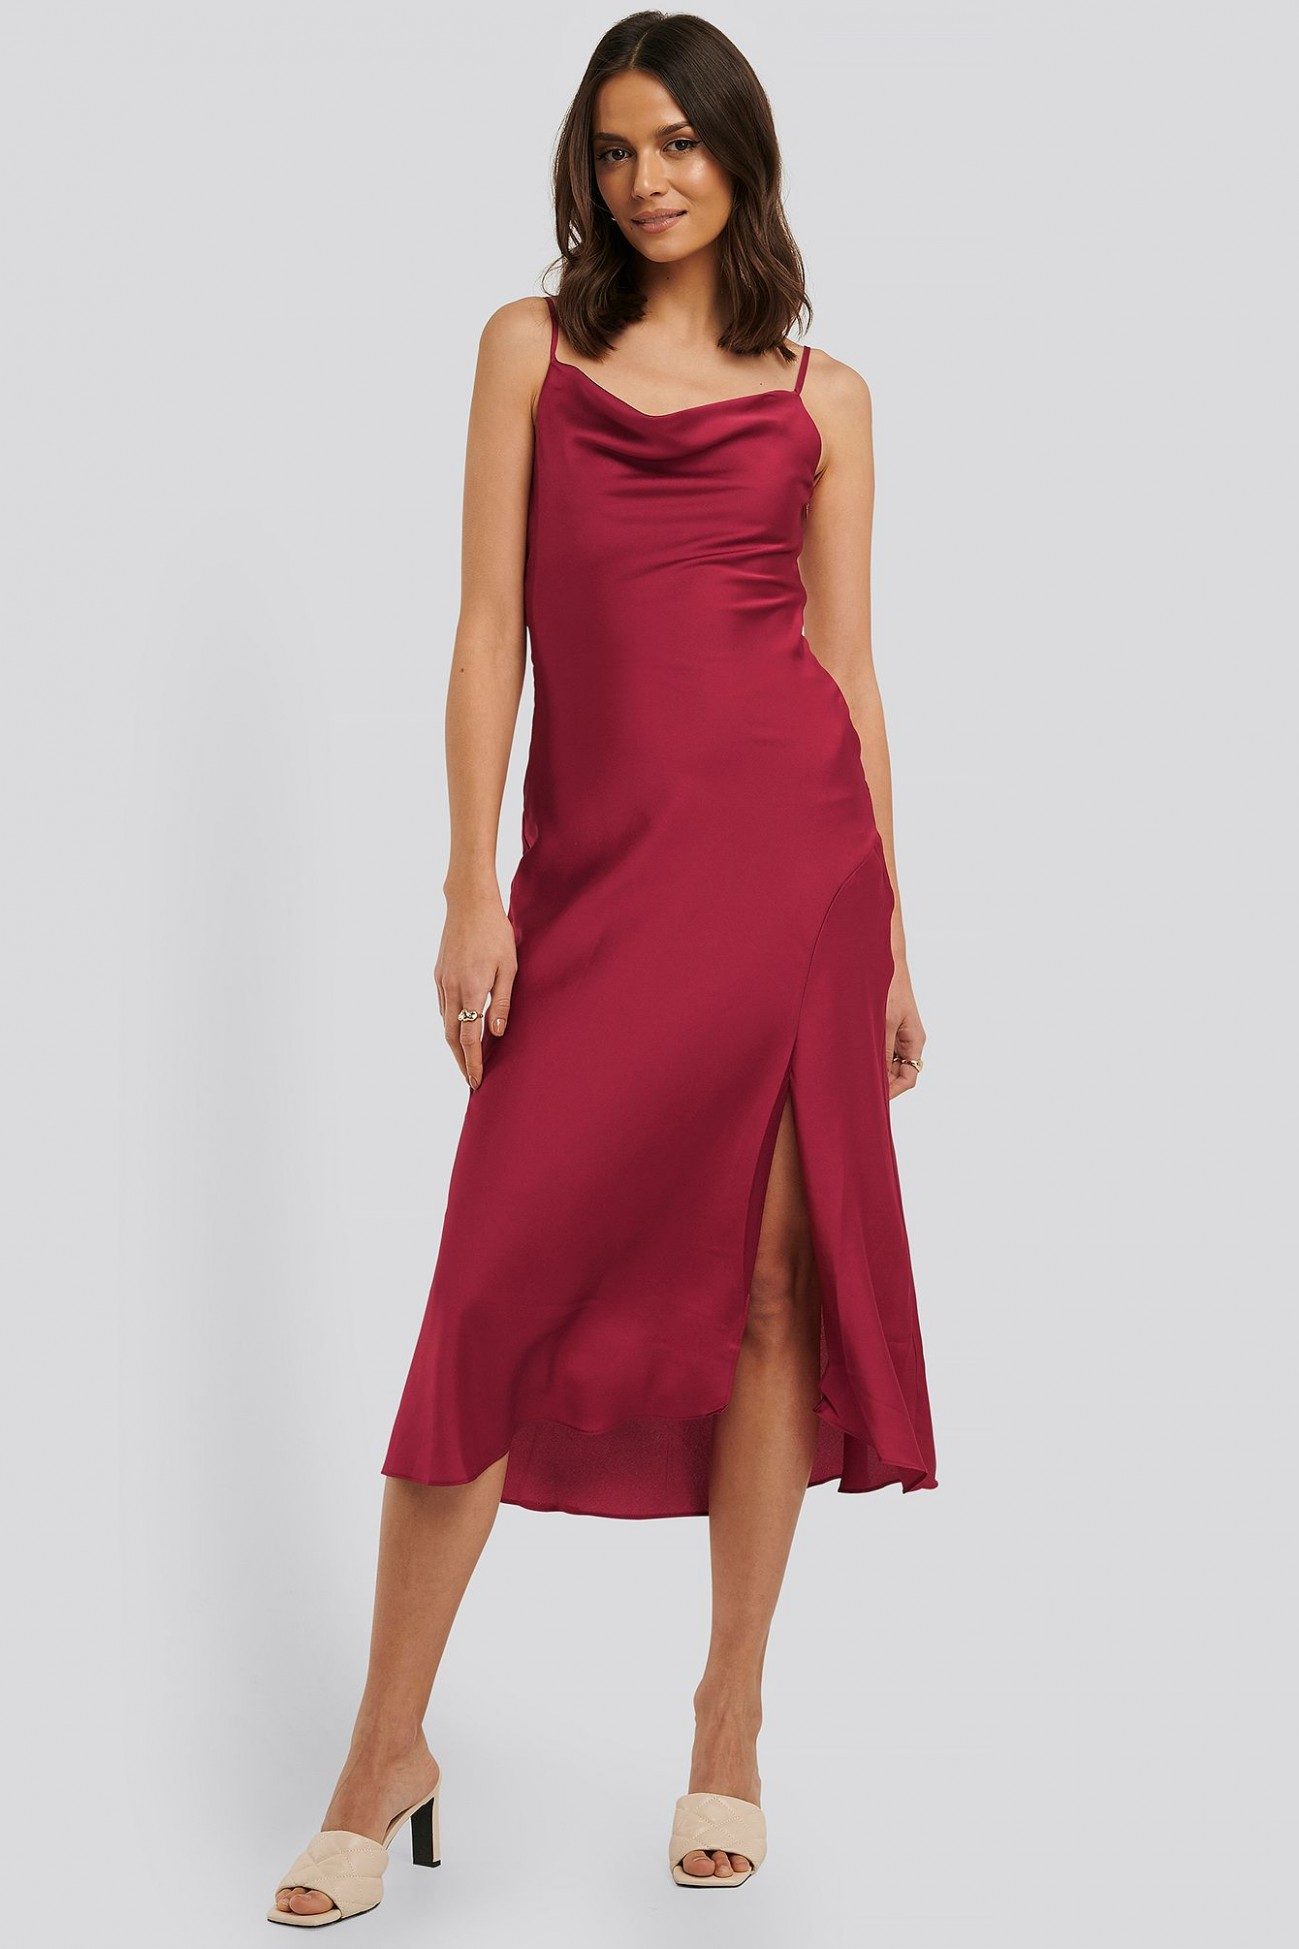 thin strap midi dress burgundy in 11 cocktailkleid, festliches cocktailkleid midi